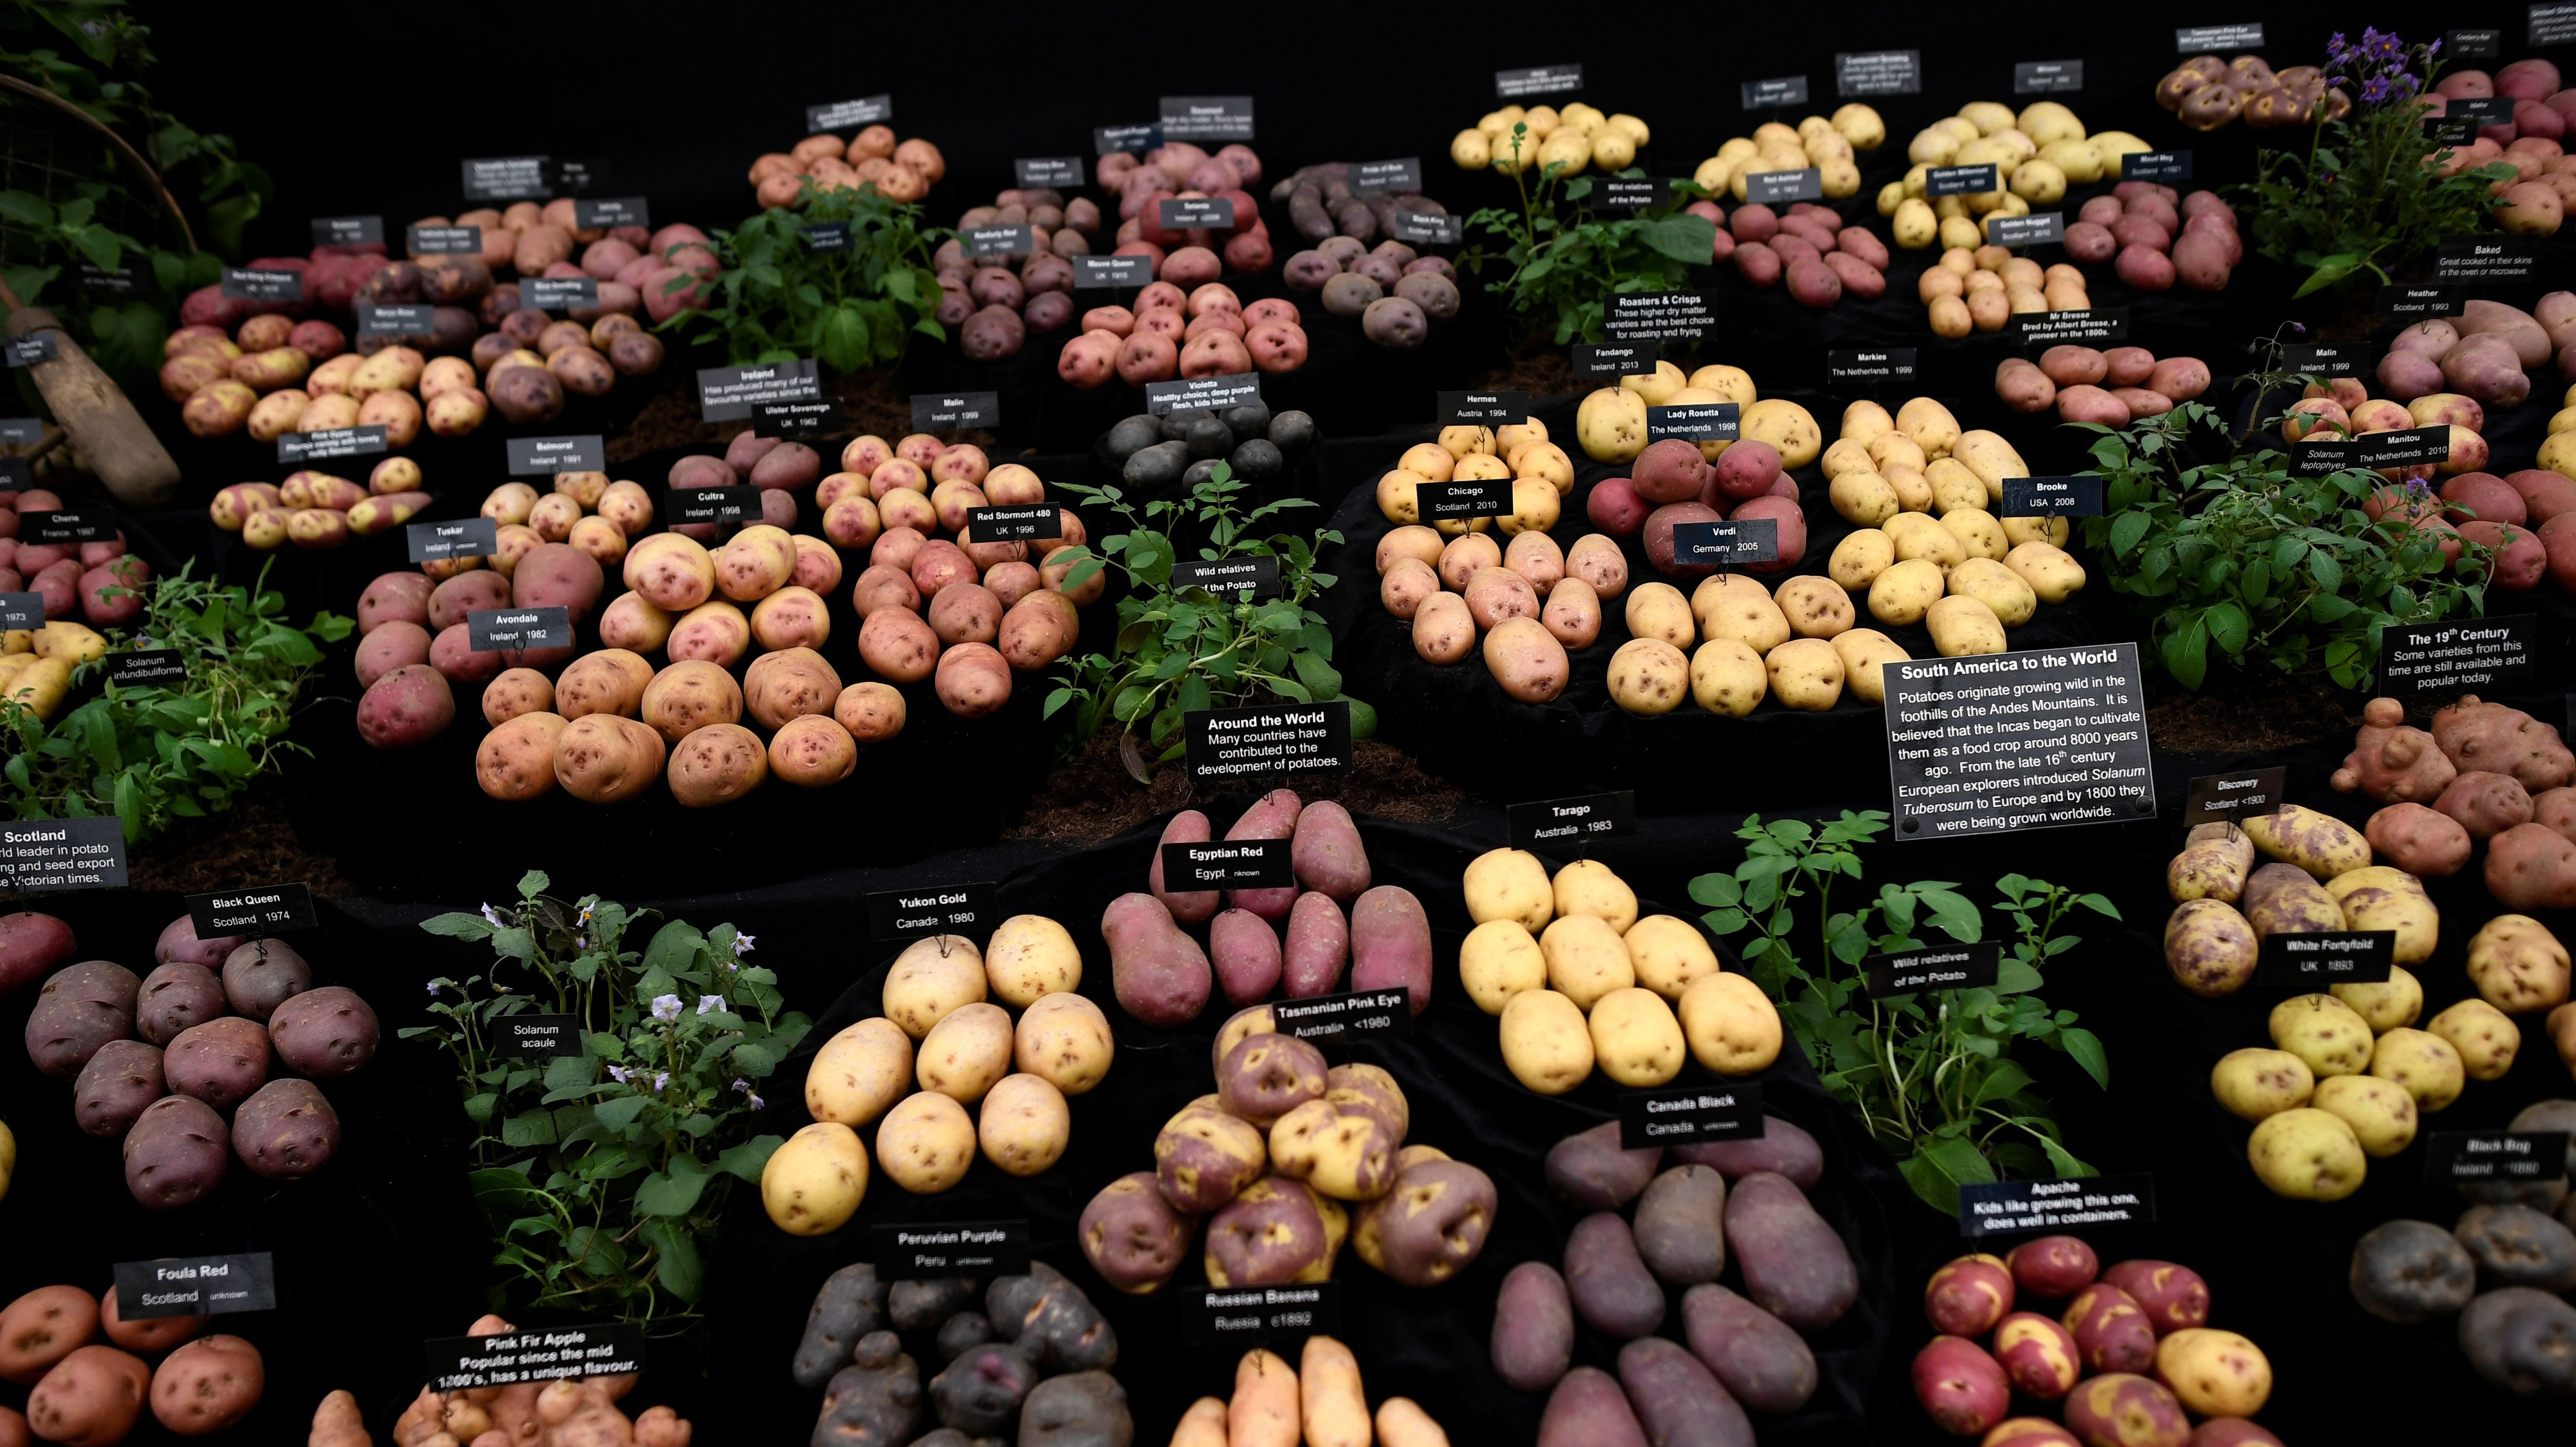 Are potatoes healthy? They are actually an almost perfect